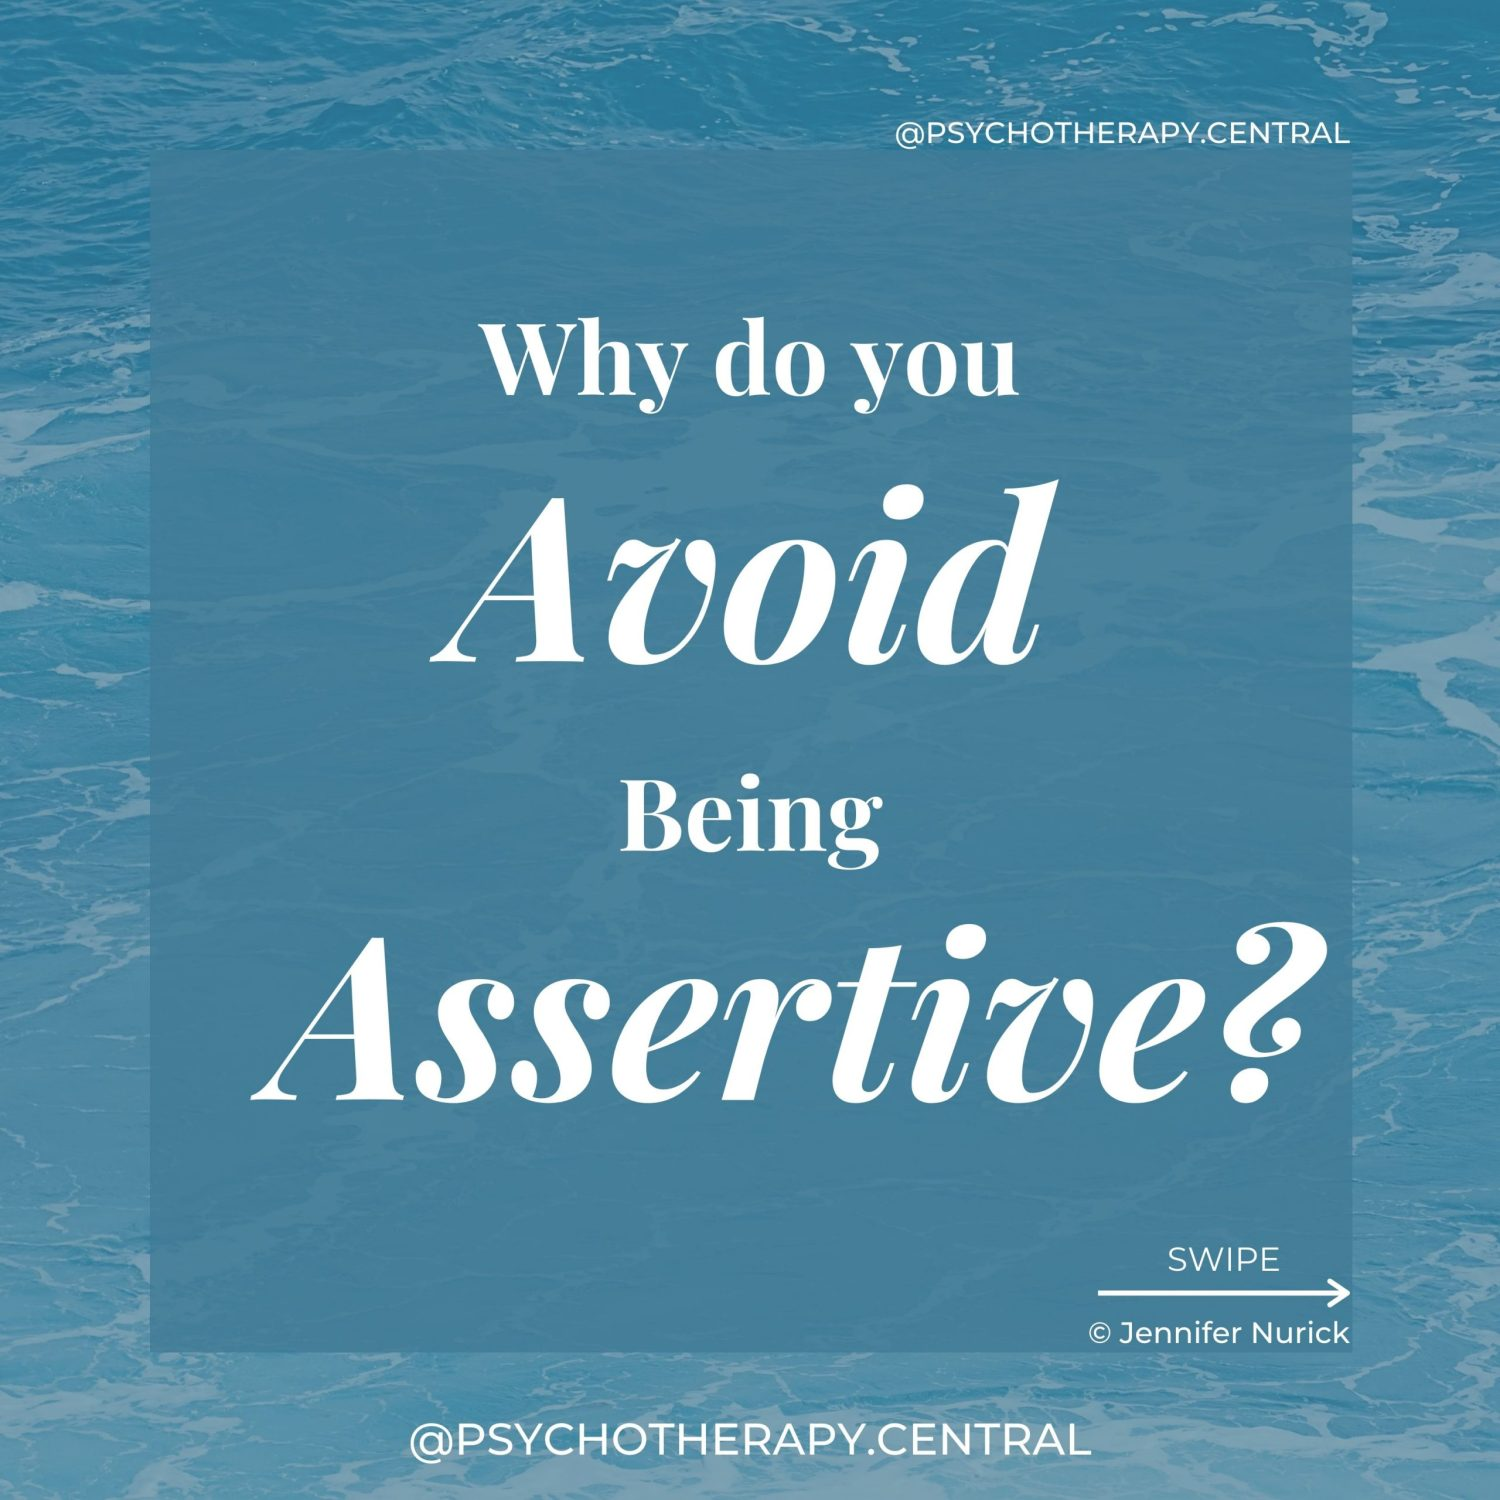 You think you will be judged or rejected You assume the other person will be upset You doubt the validity of your needs You avoid potentially uncomfortable situations and conflict You lack the skills to communicate assertively